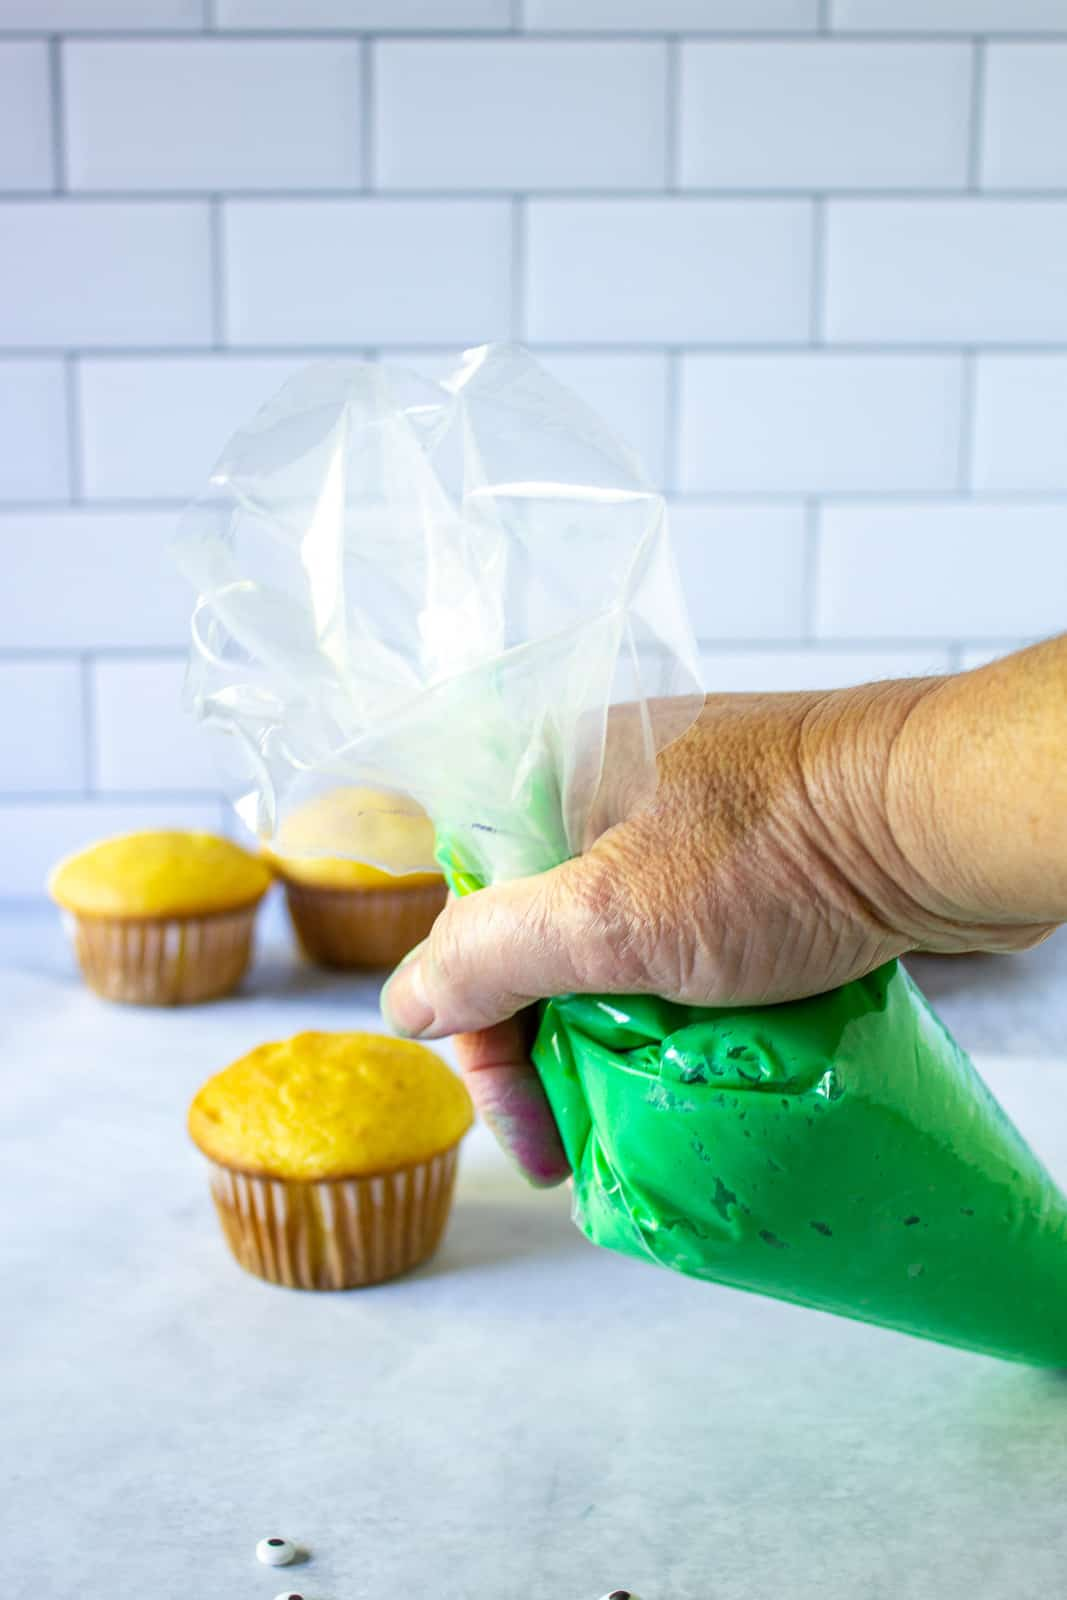 A cake decorating bag filled with green frosting.